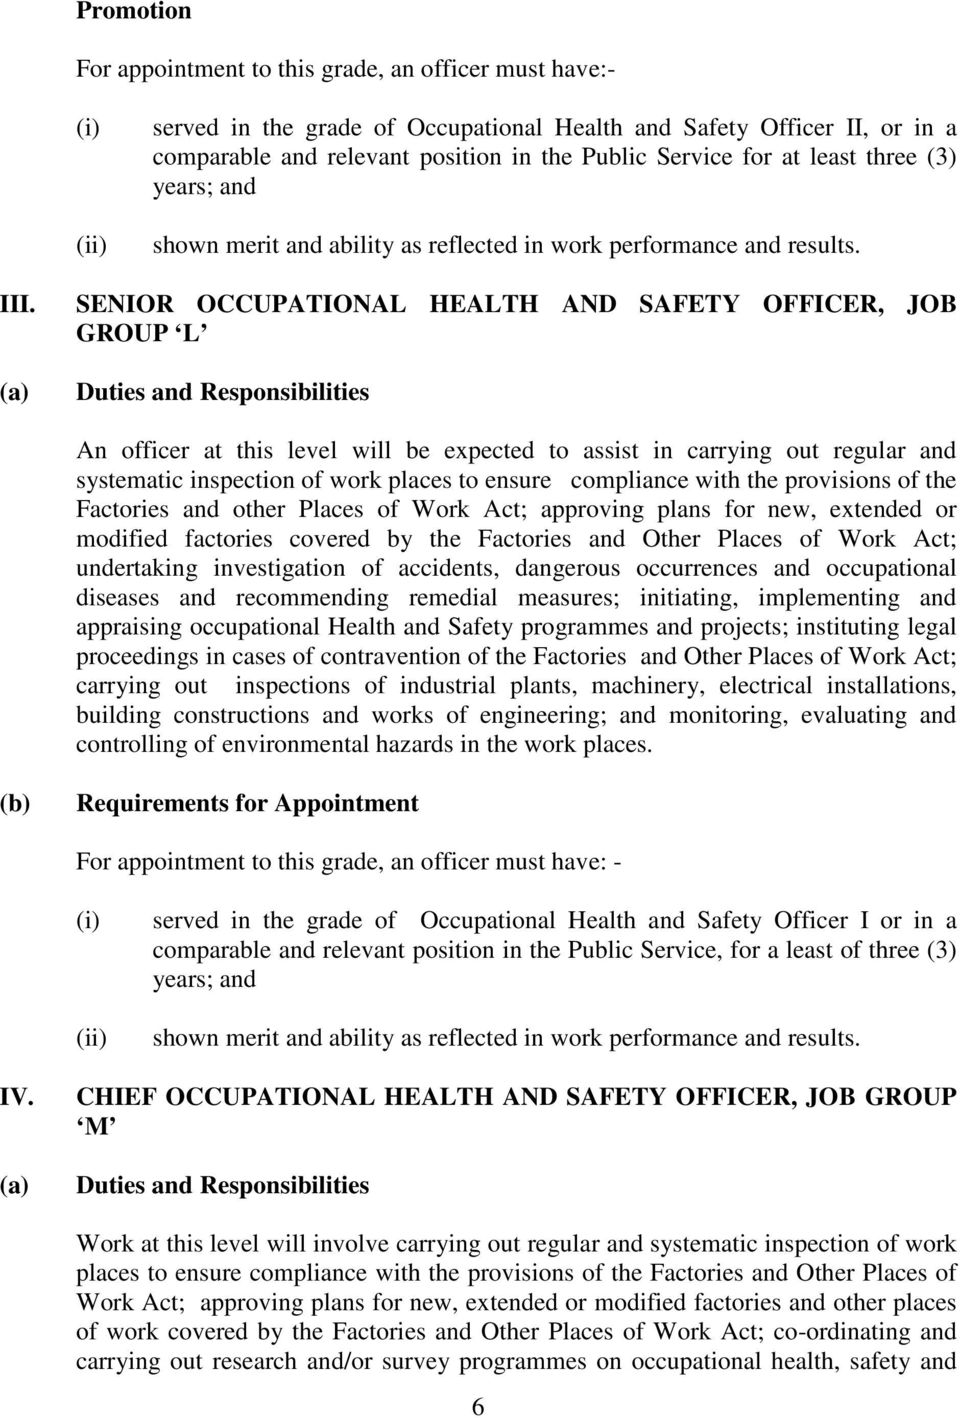 SENIOR OCCUPATIONAL HEALTH AND SAFETY OFFICER, JOB GROUP L An officer at this level will be expected to assist in carrying out regular and systematic inspection of work places to ensure compliance